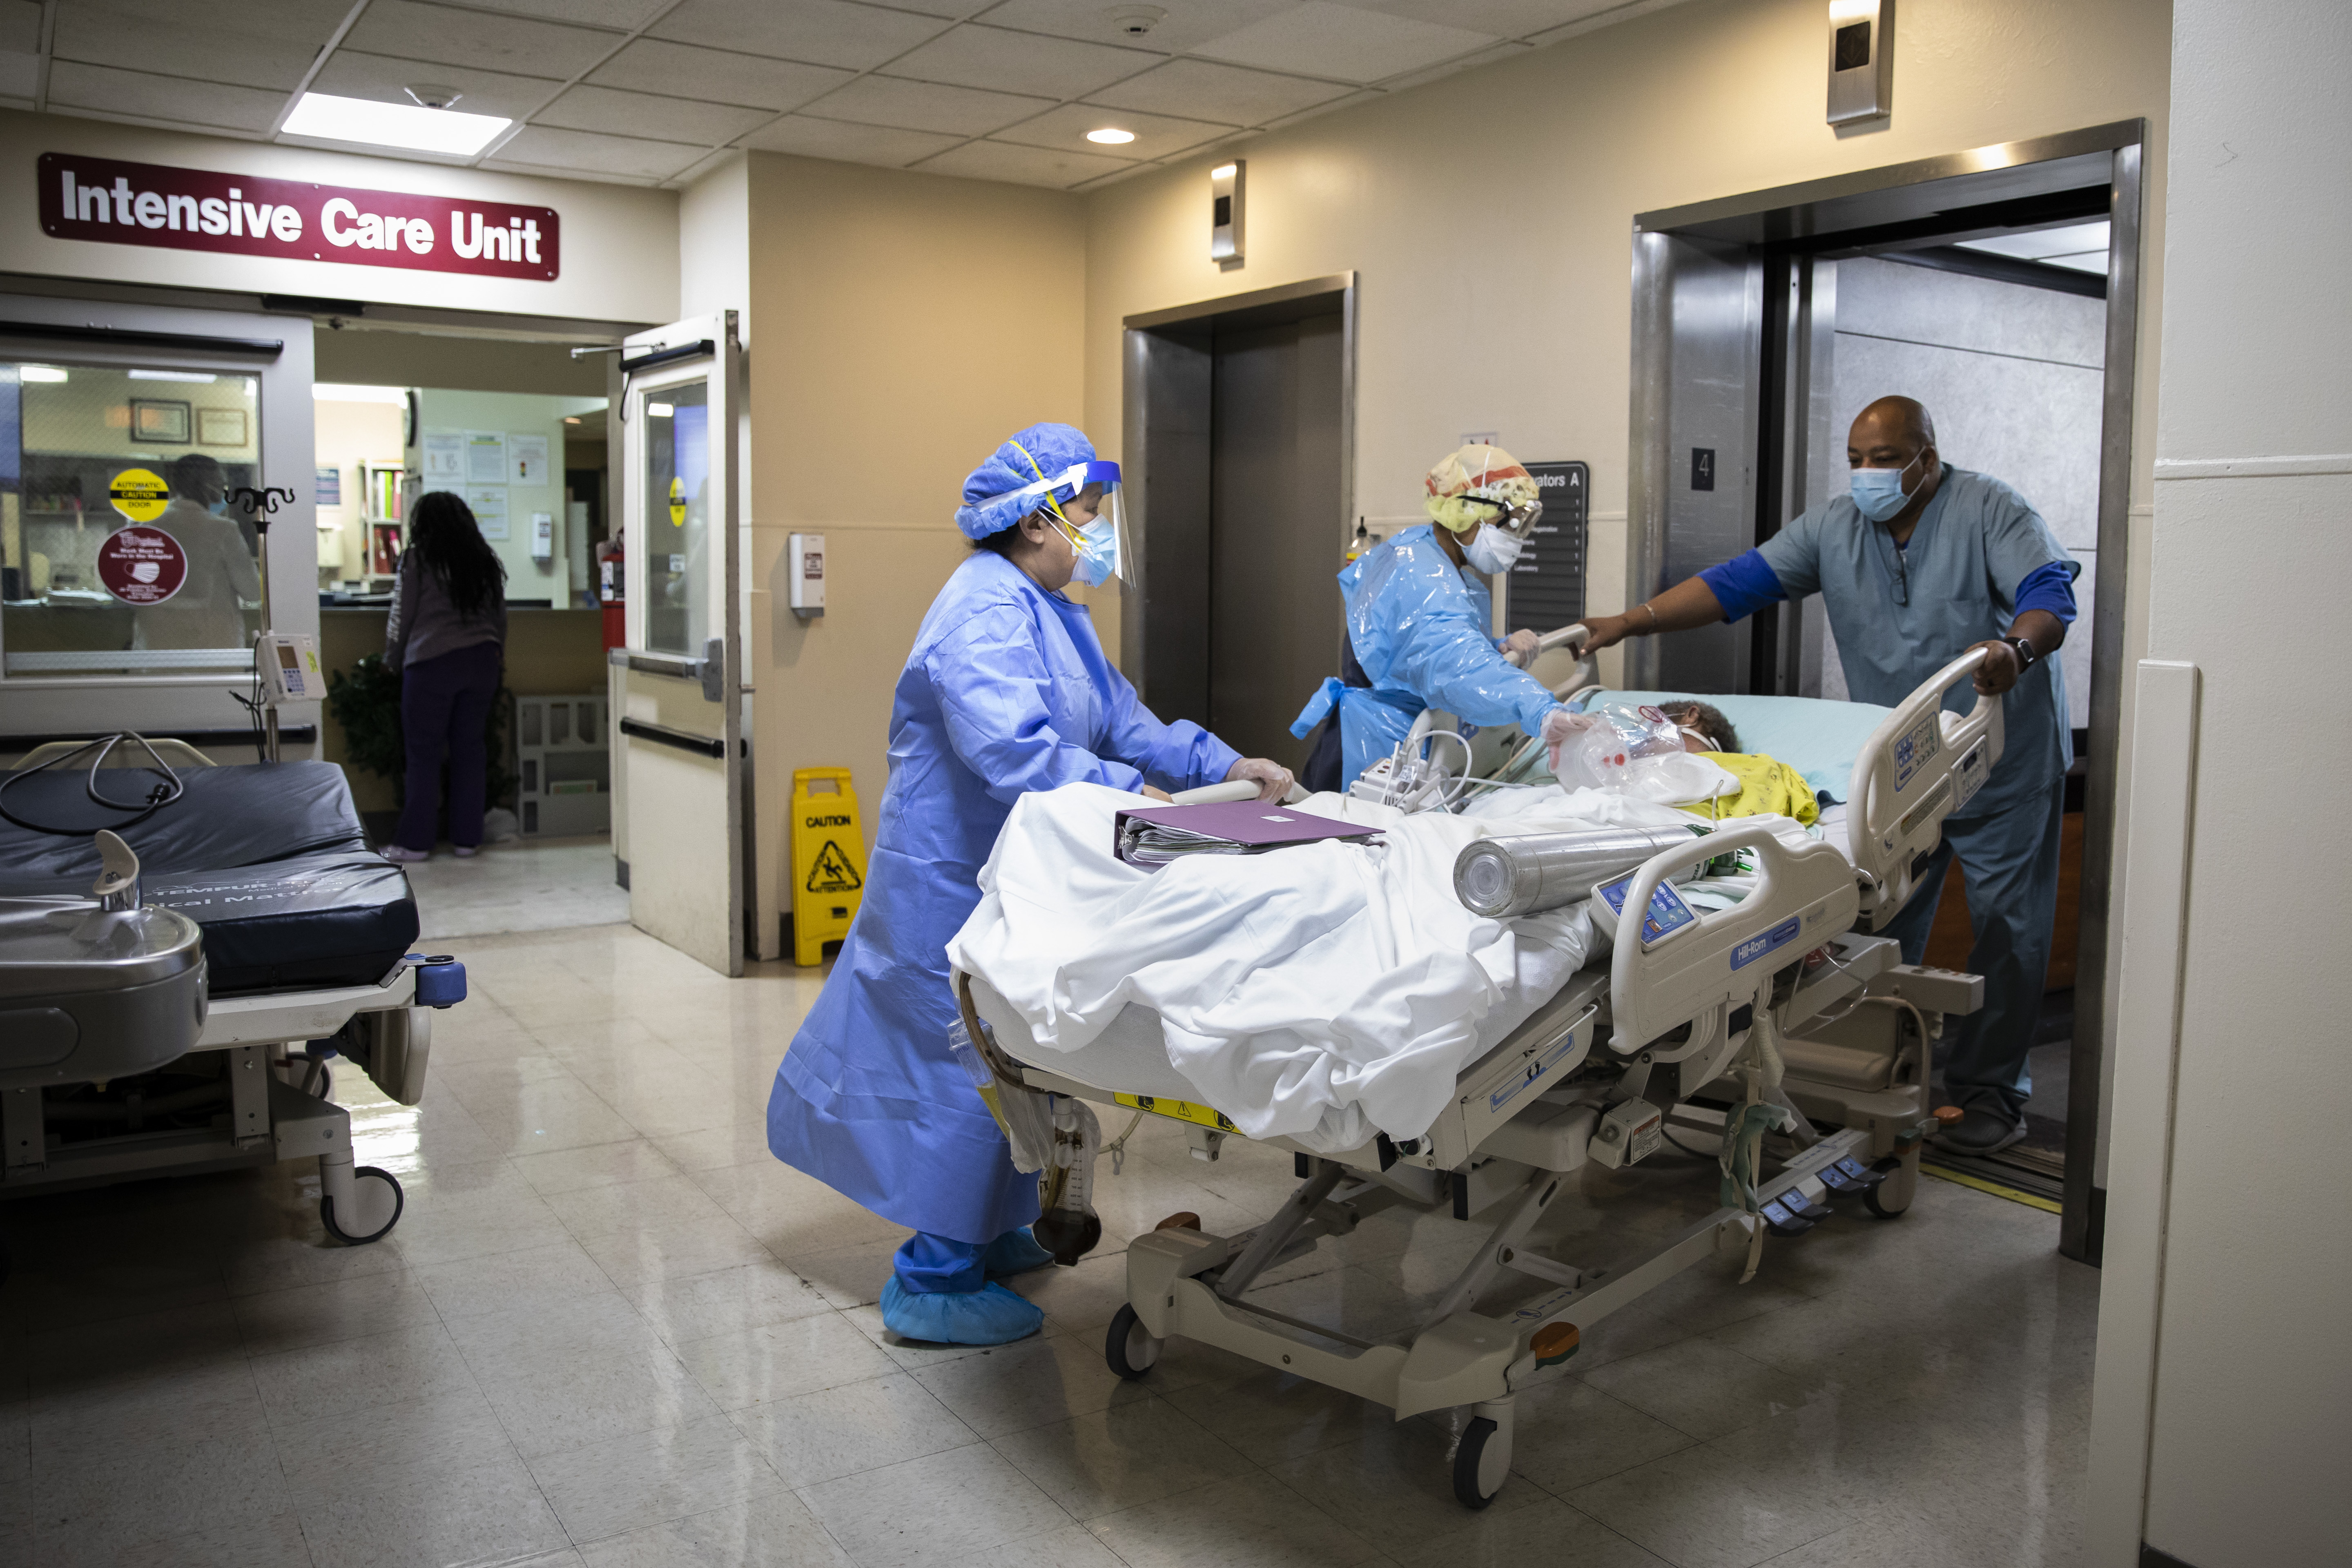 A patient is wheeled out of the Intensive Care Unit at Roseland Community Hospital on the Far South Side last December.